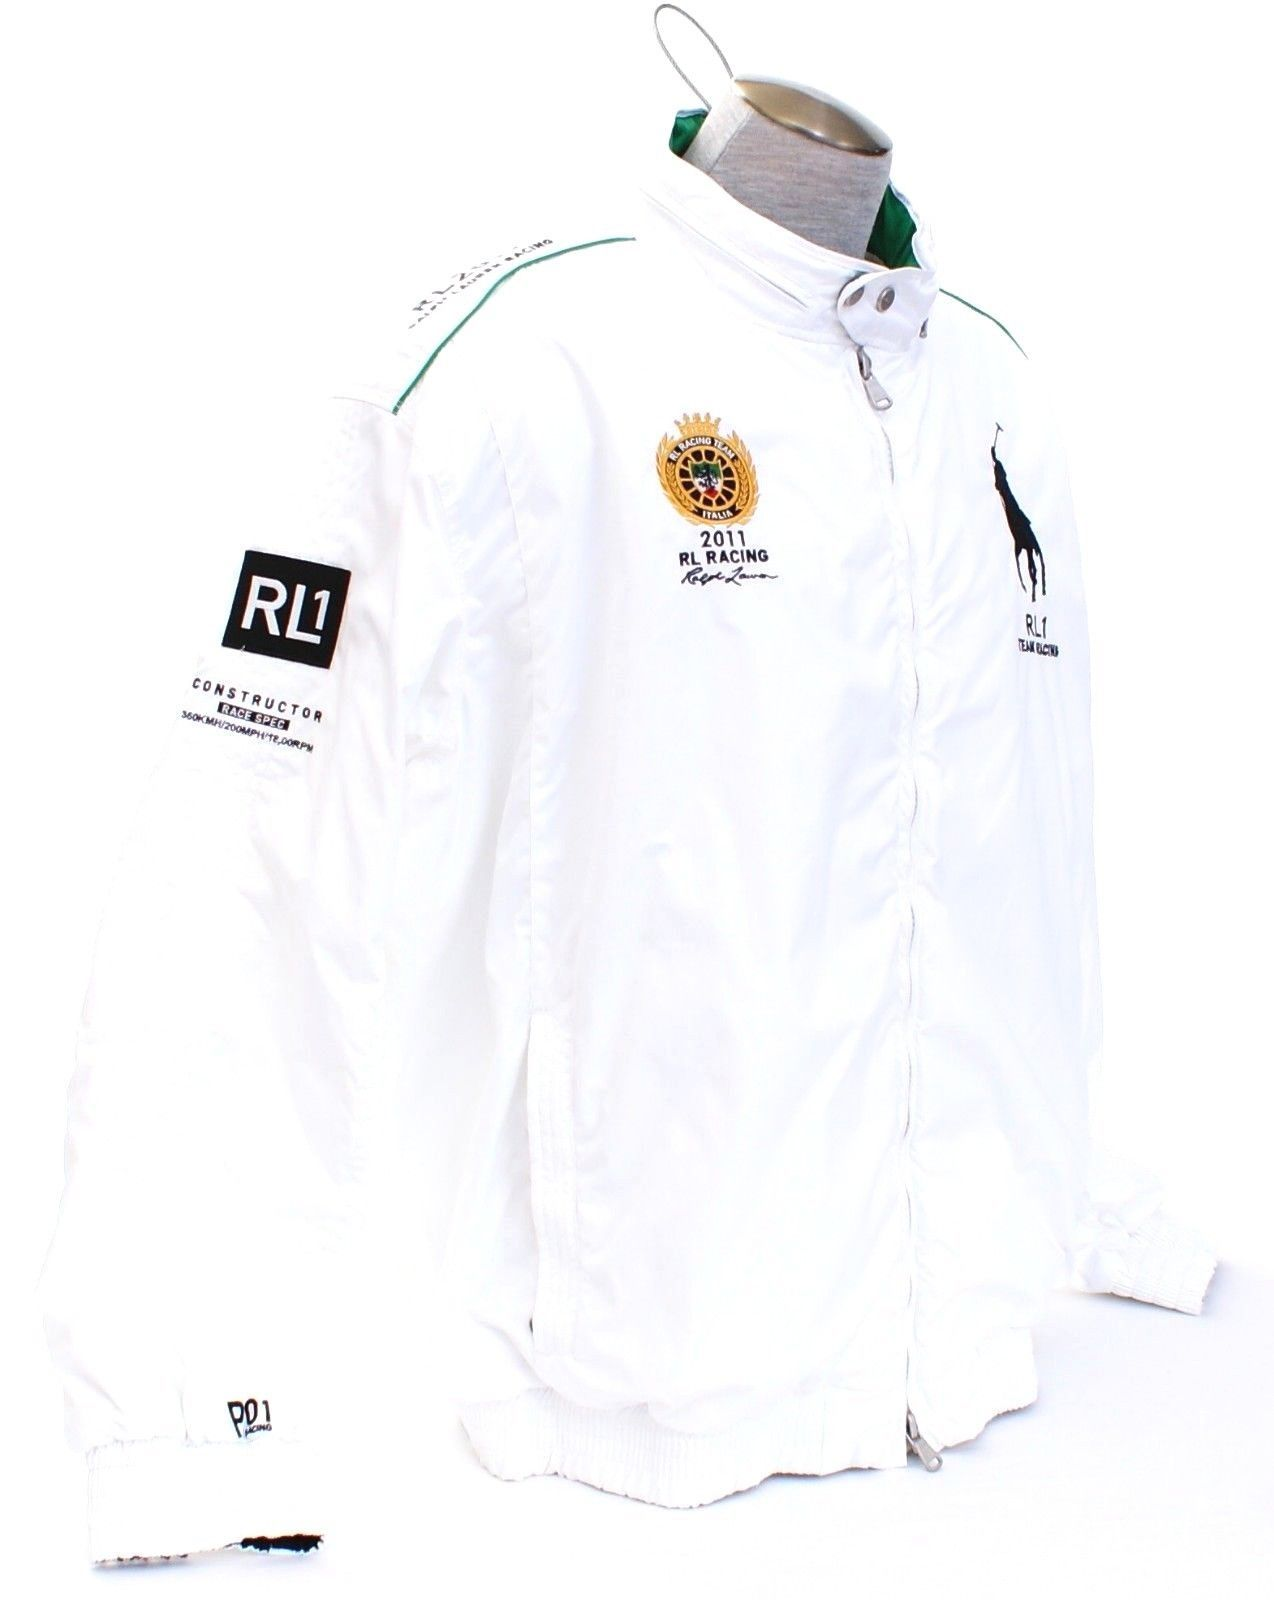 Lauren Similar Rl Racing 2011 11 Polo Items And Team White Ralph 5L4ARj